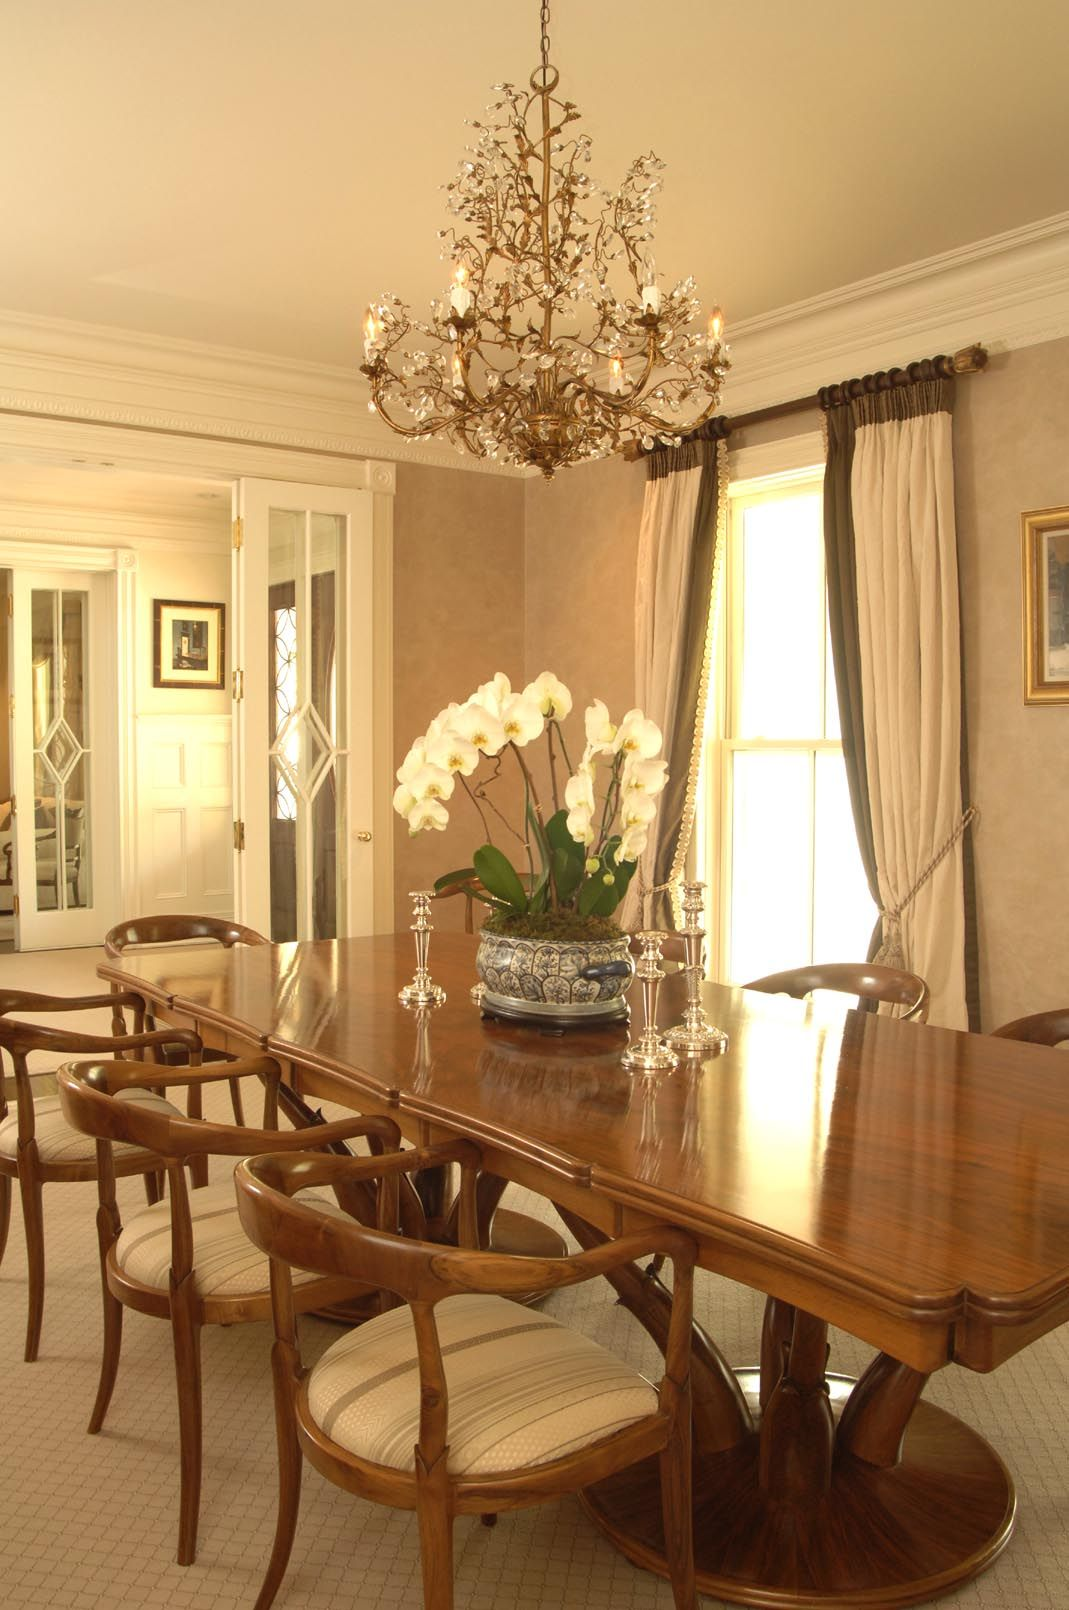 Custom Dining Table And Chairs In This Greenwich Ct Home With